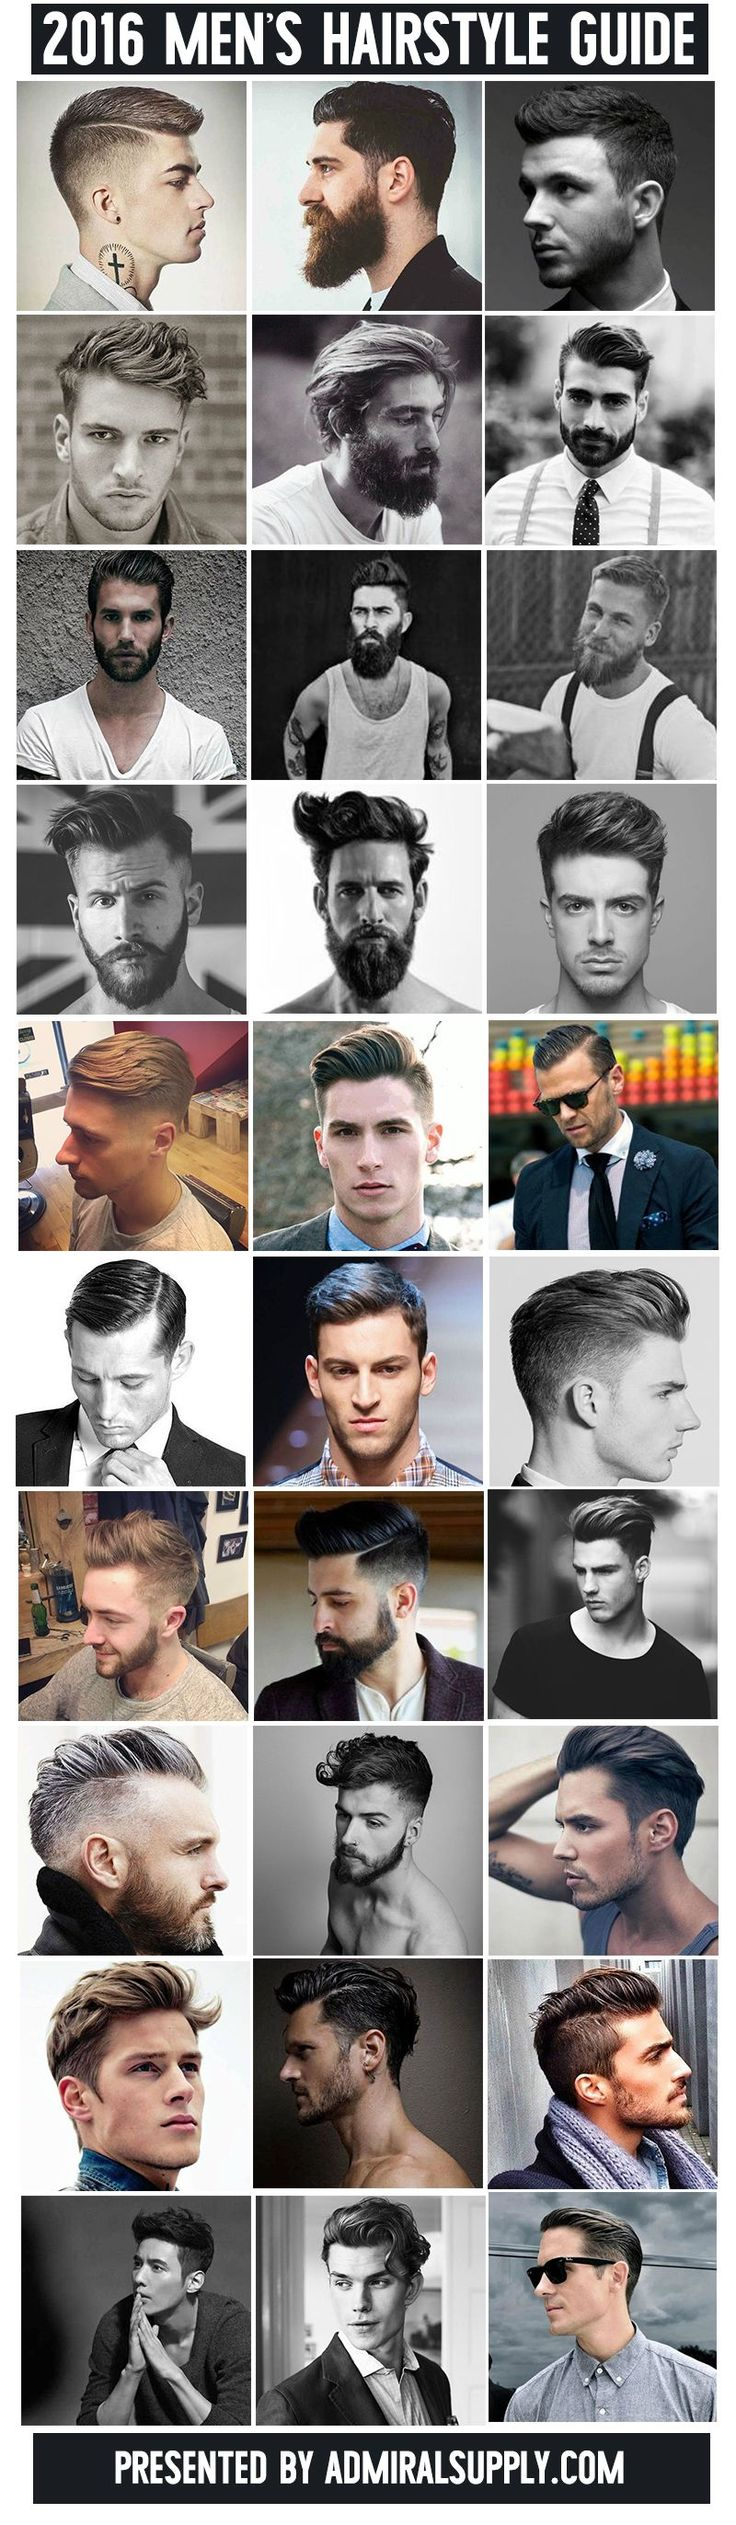 Guys Hairstyles 2016 Model Haircut Plus Hairstyle Ideas